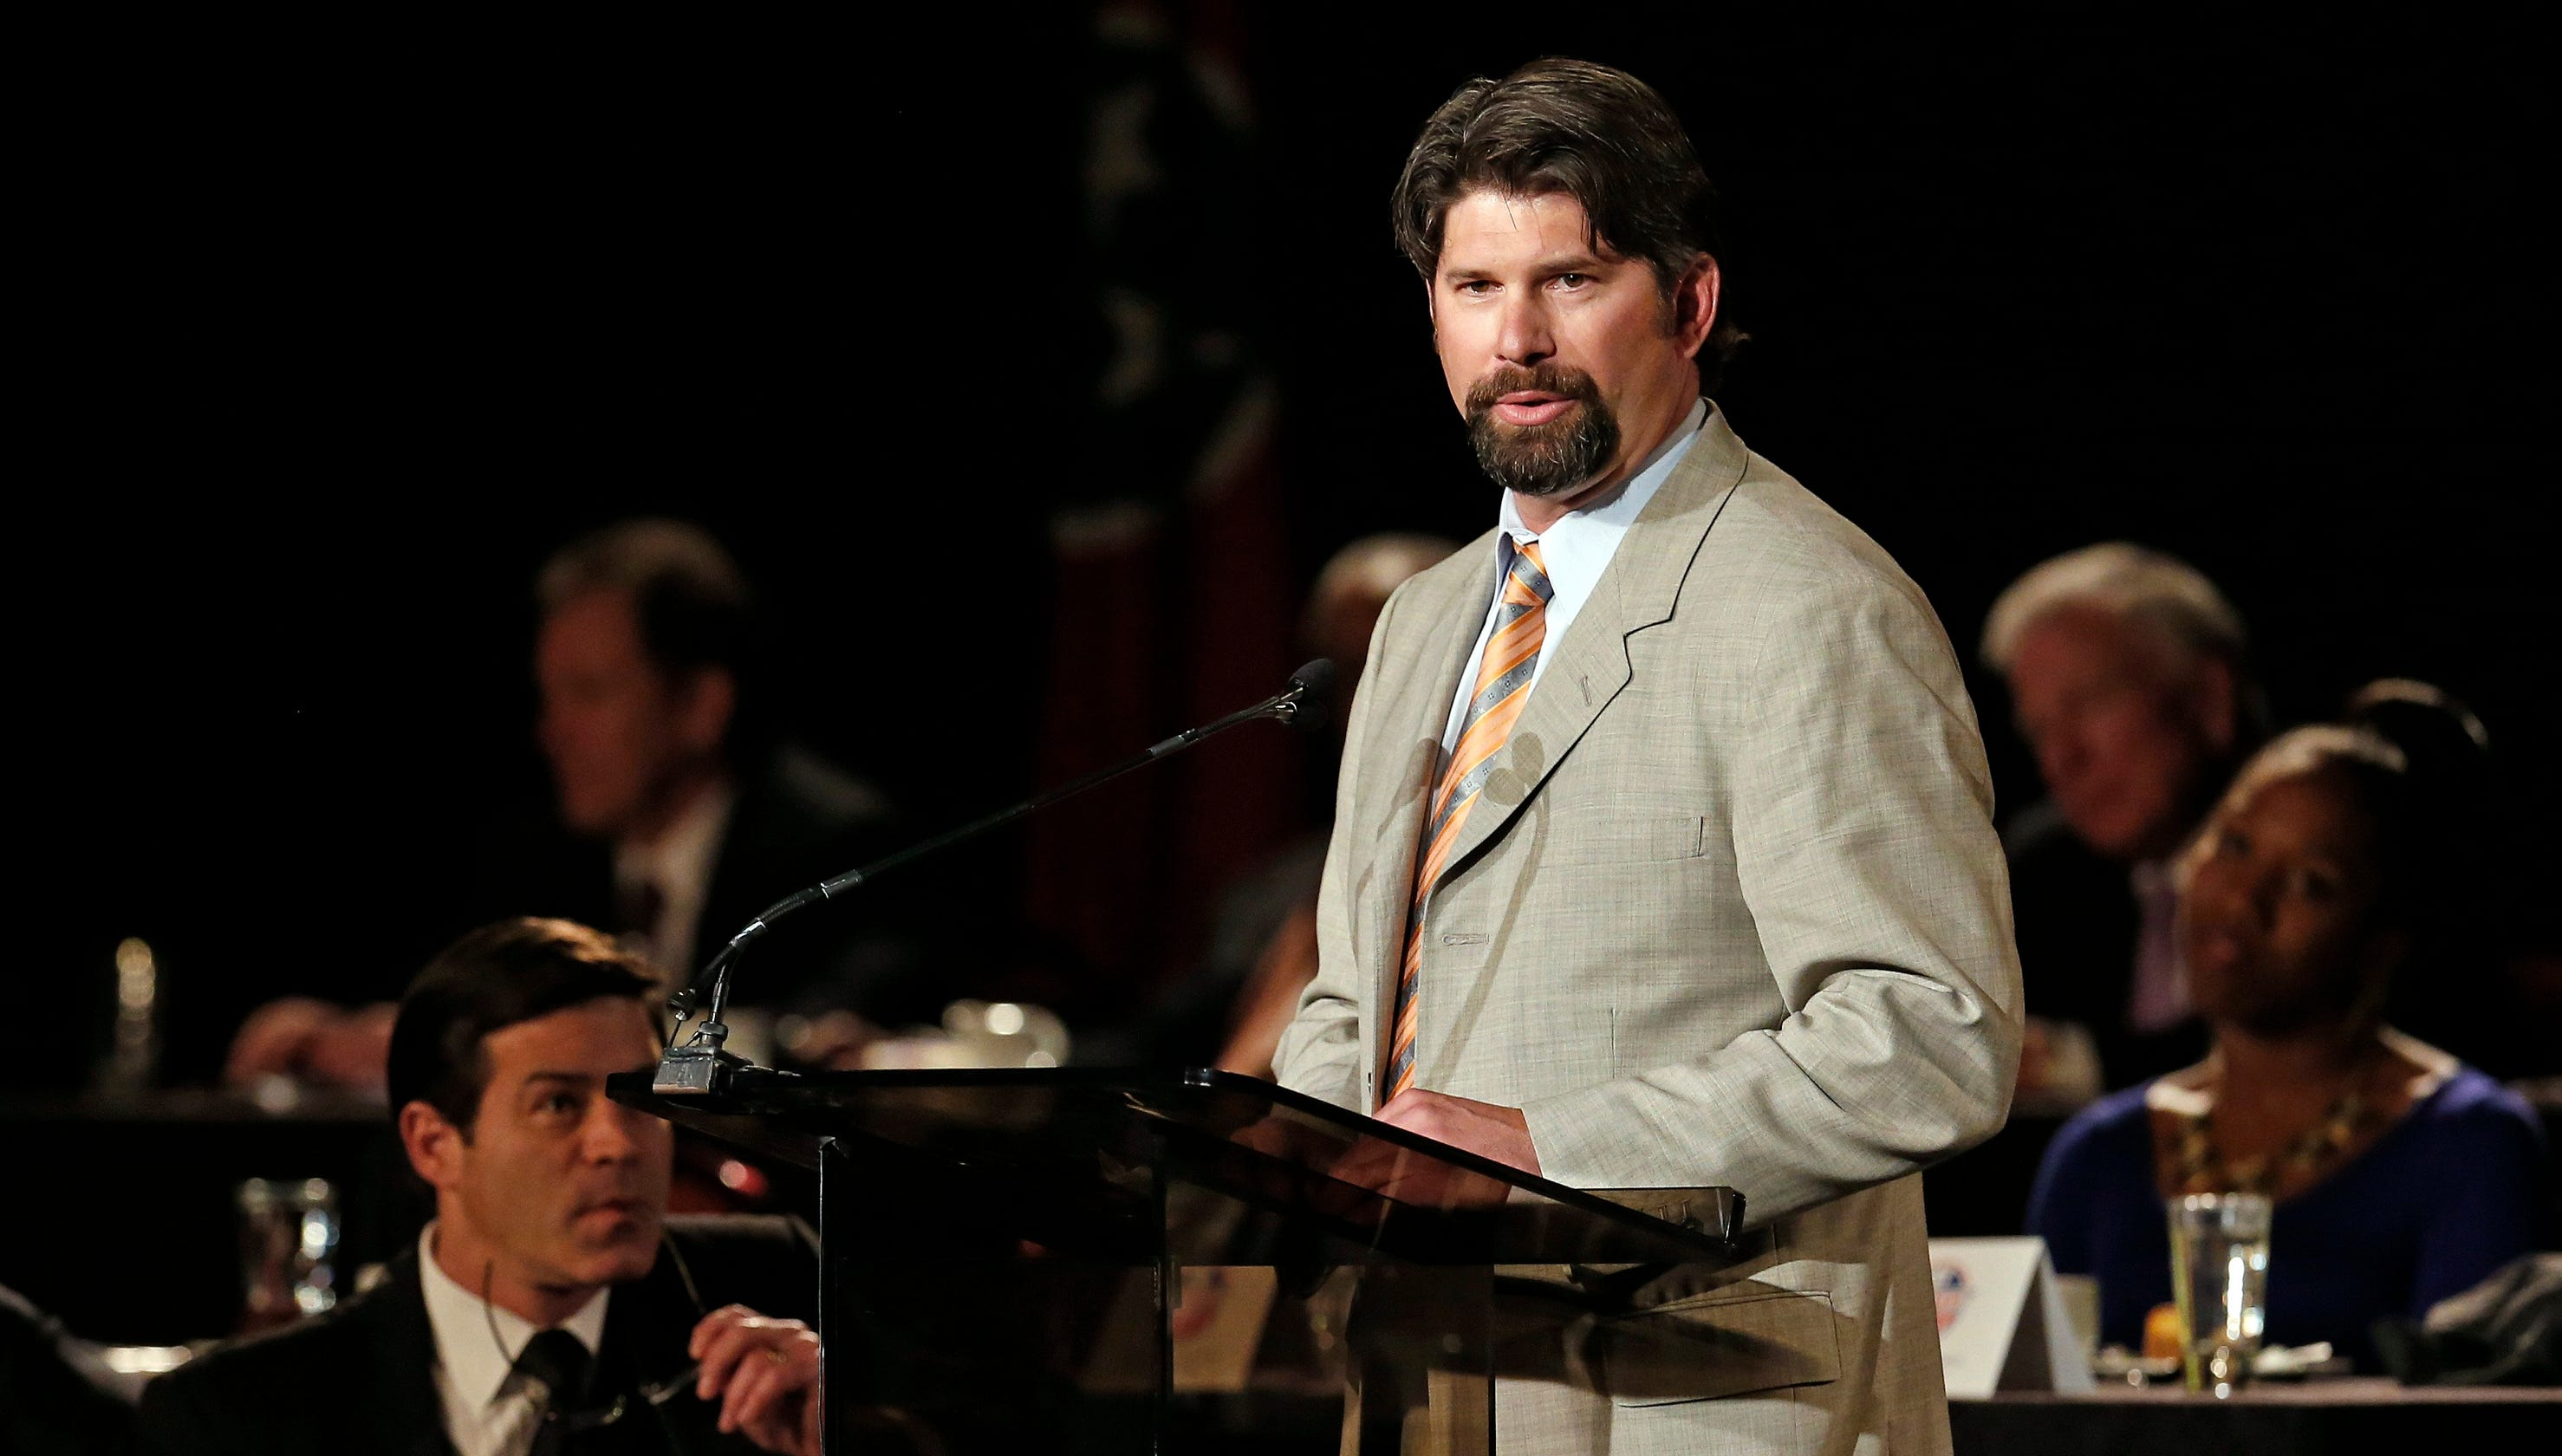 Todd Helton, Andy Landers headline Greater Knoxville Sports Hall of Fame induction class